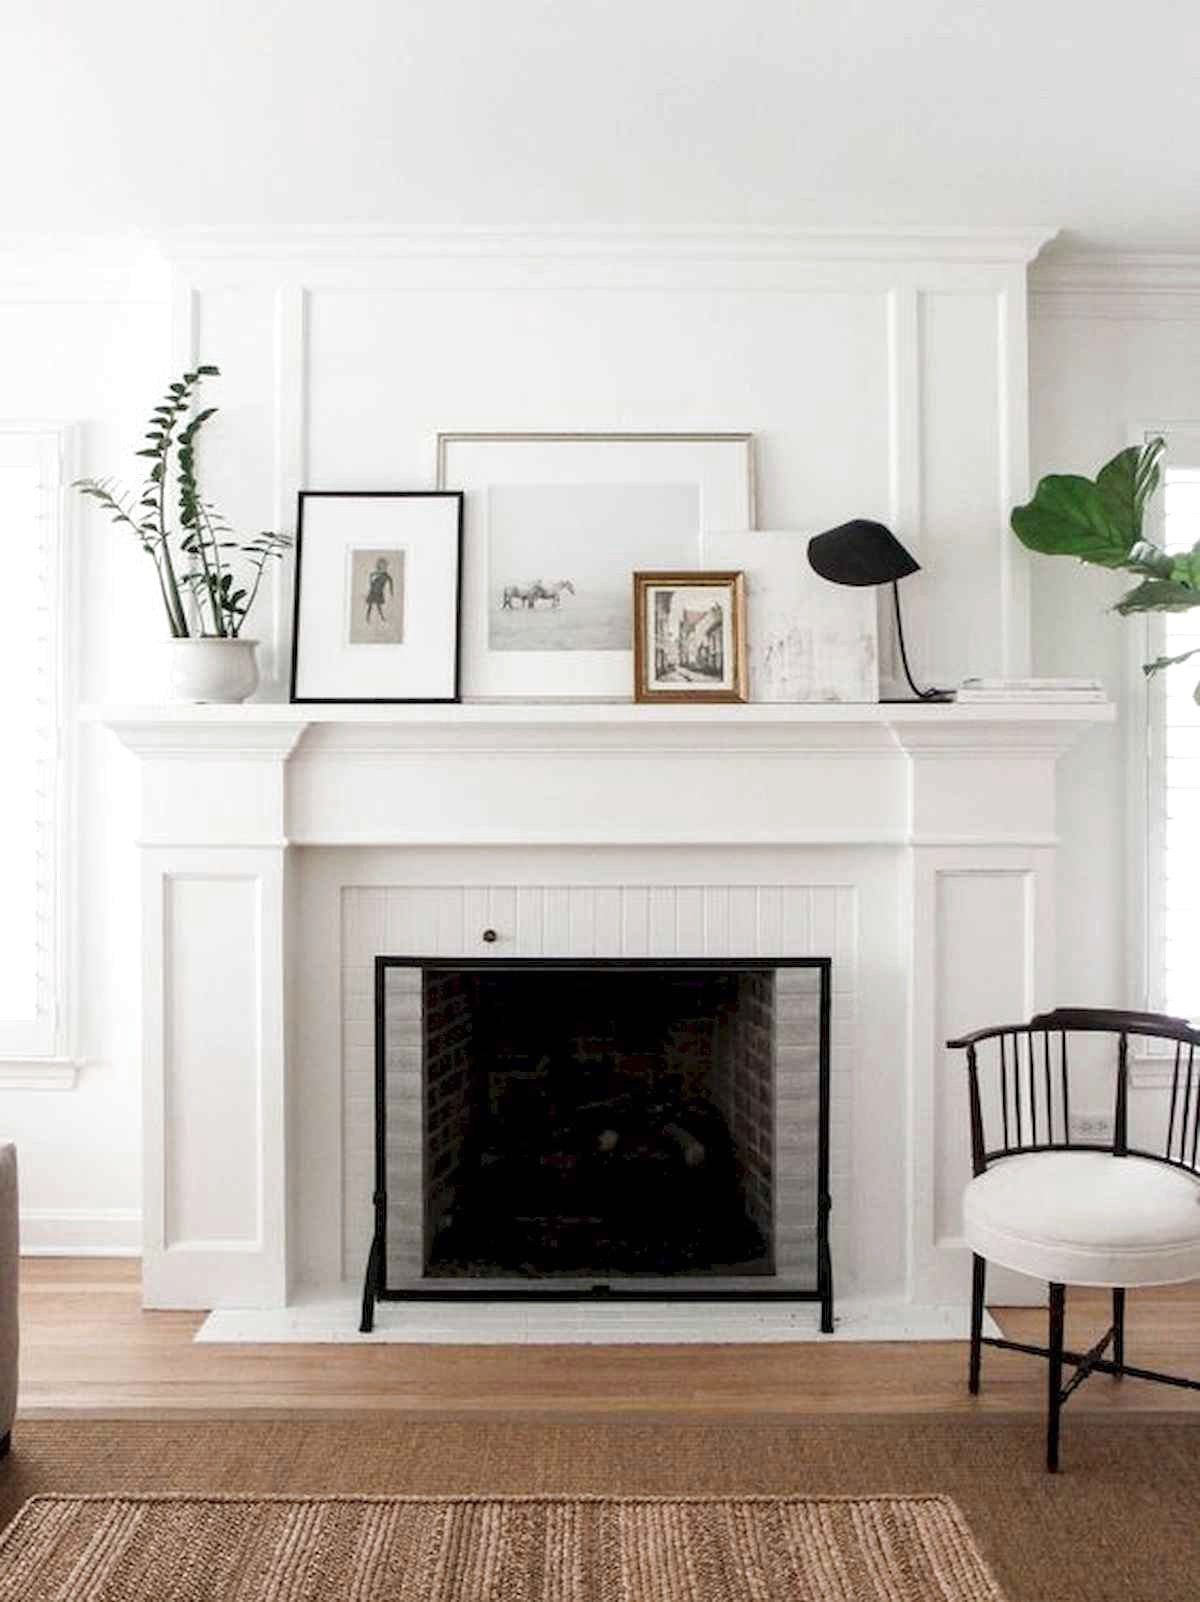 41 Awesome Farmhouse Fireplace Decor Ideas And Remodel Fireplace Mantel Designs Contemporary Fireplace Farmhouse Fireplace Mantels